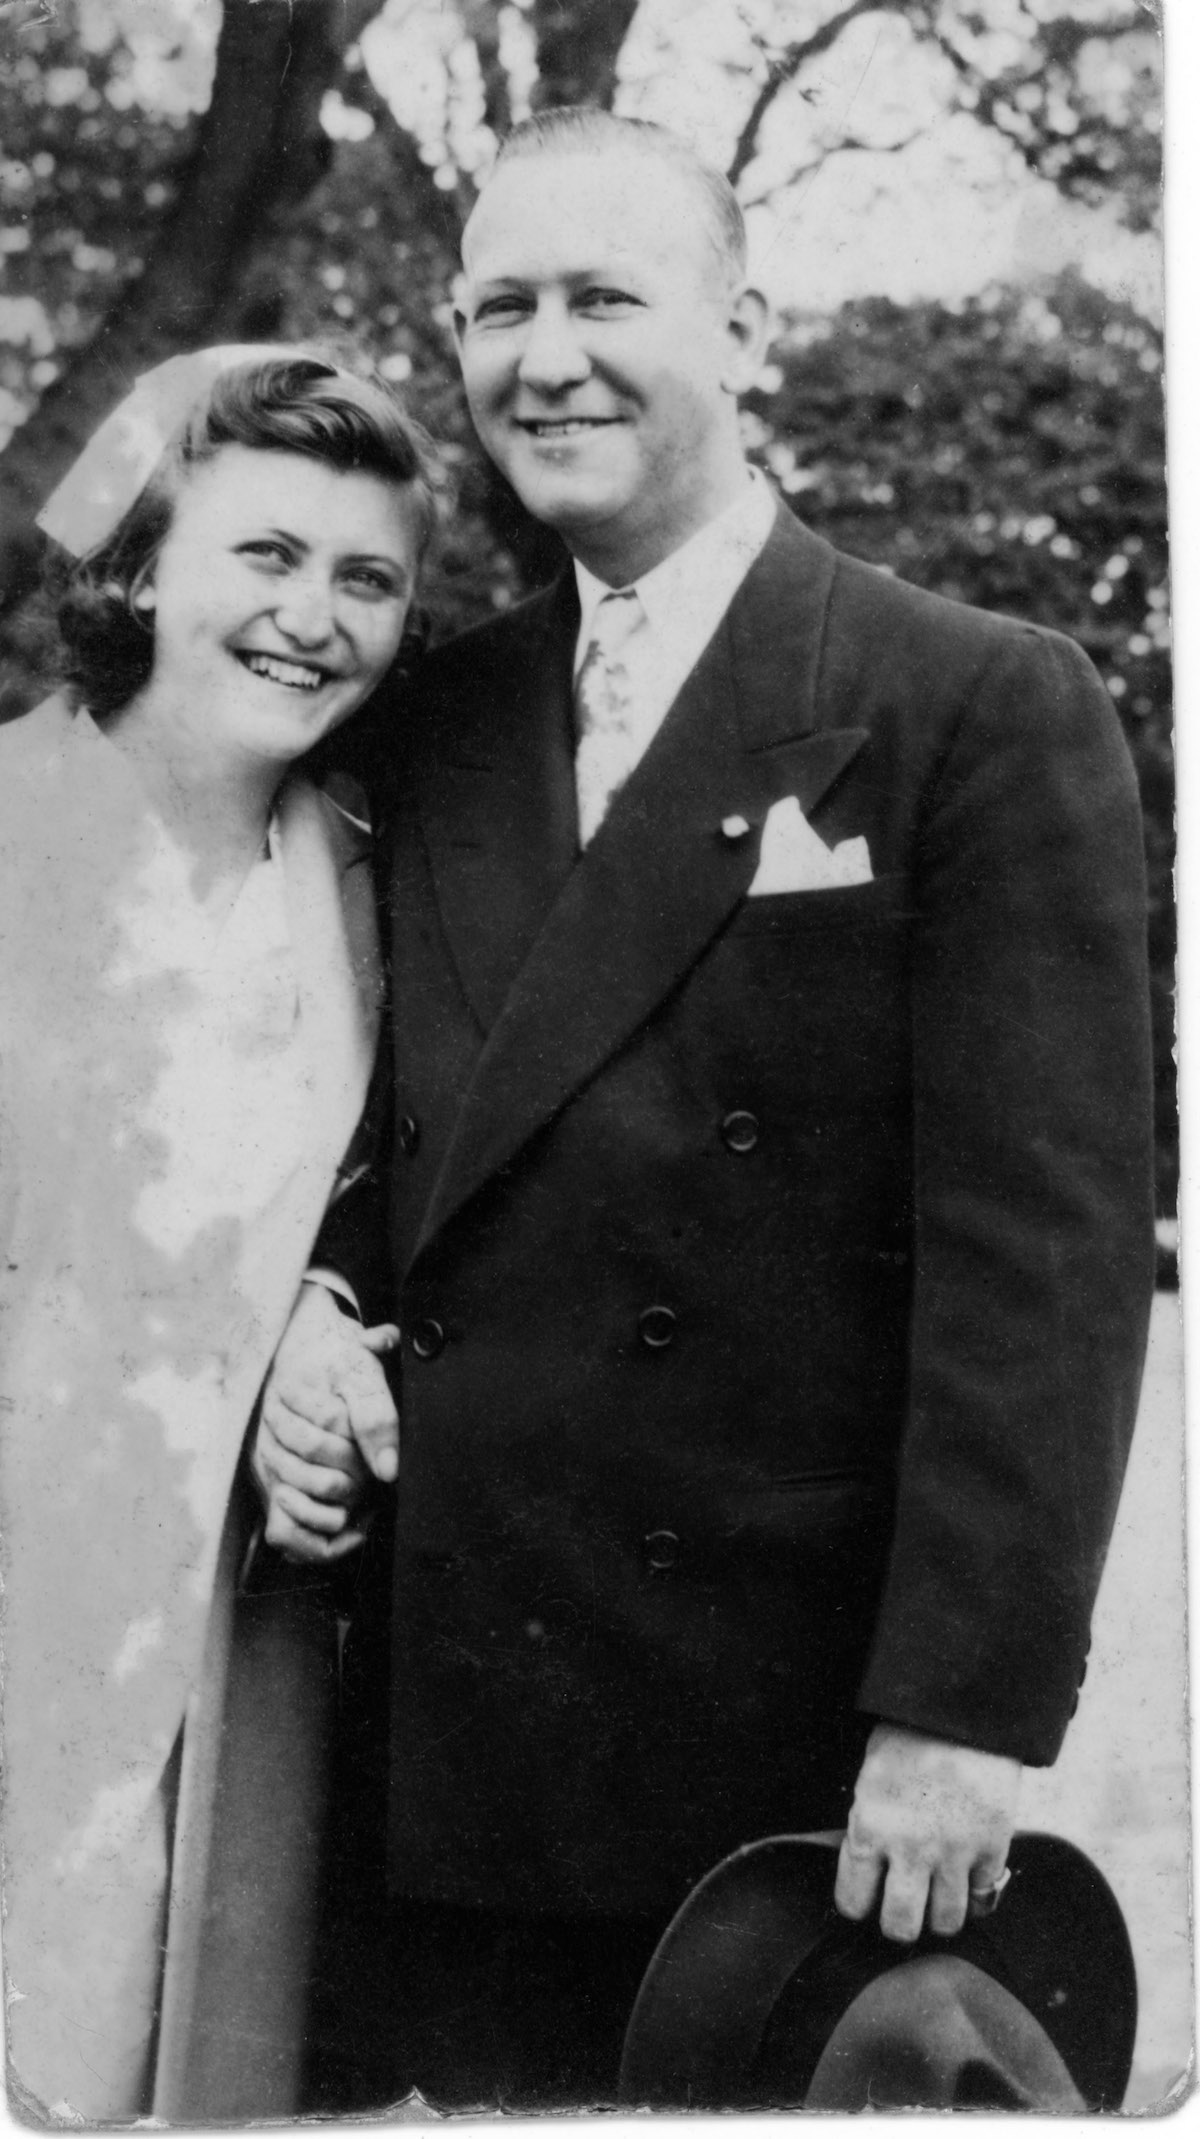 Lenore Strauber, left, with her father, Jerry Strauber, at an unknown time (possibly sometime around 1950) in an unknown location.